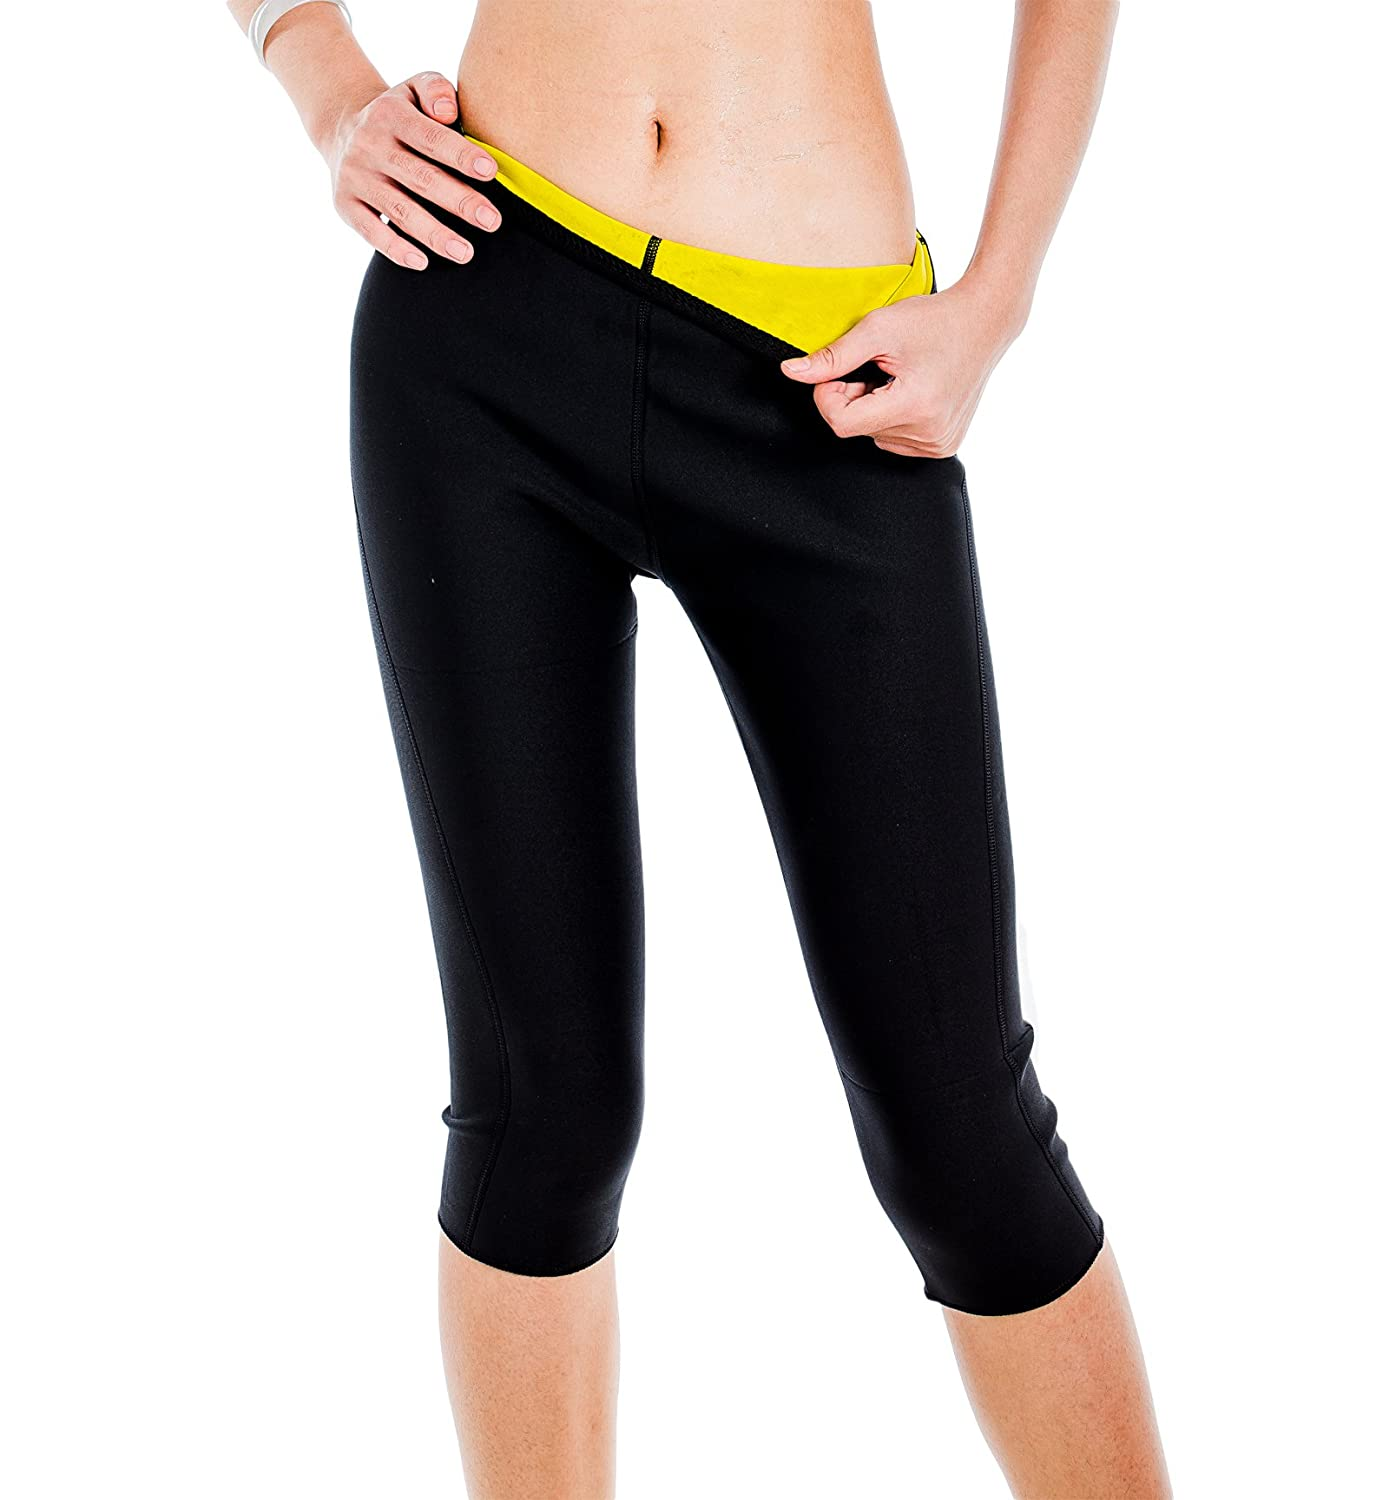 Breeches for slimming Hot Shapers: reviews, sizes, instruction 3